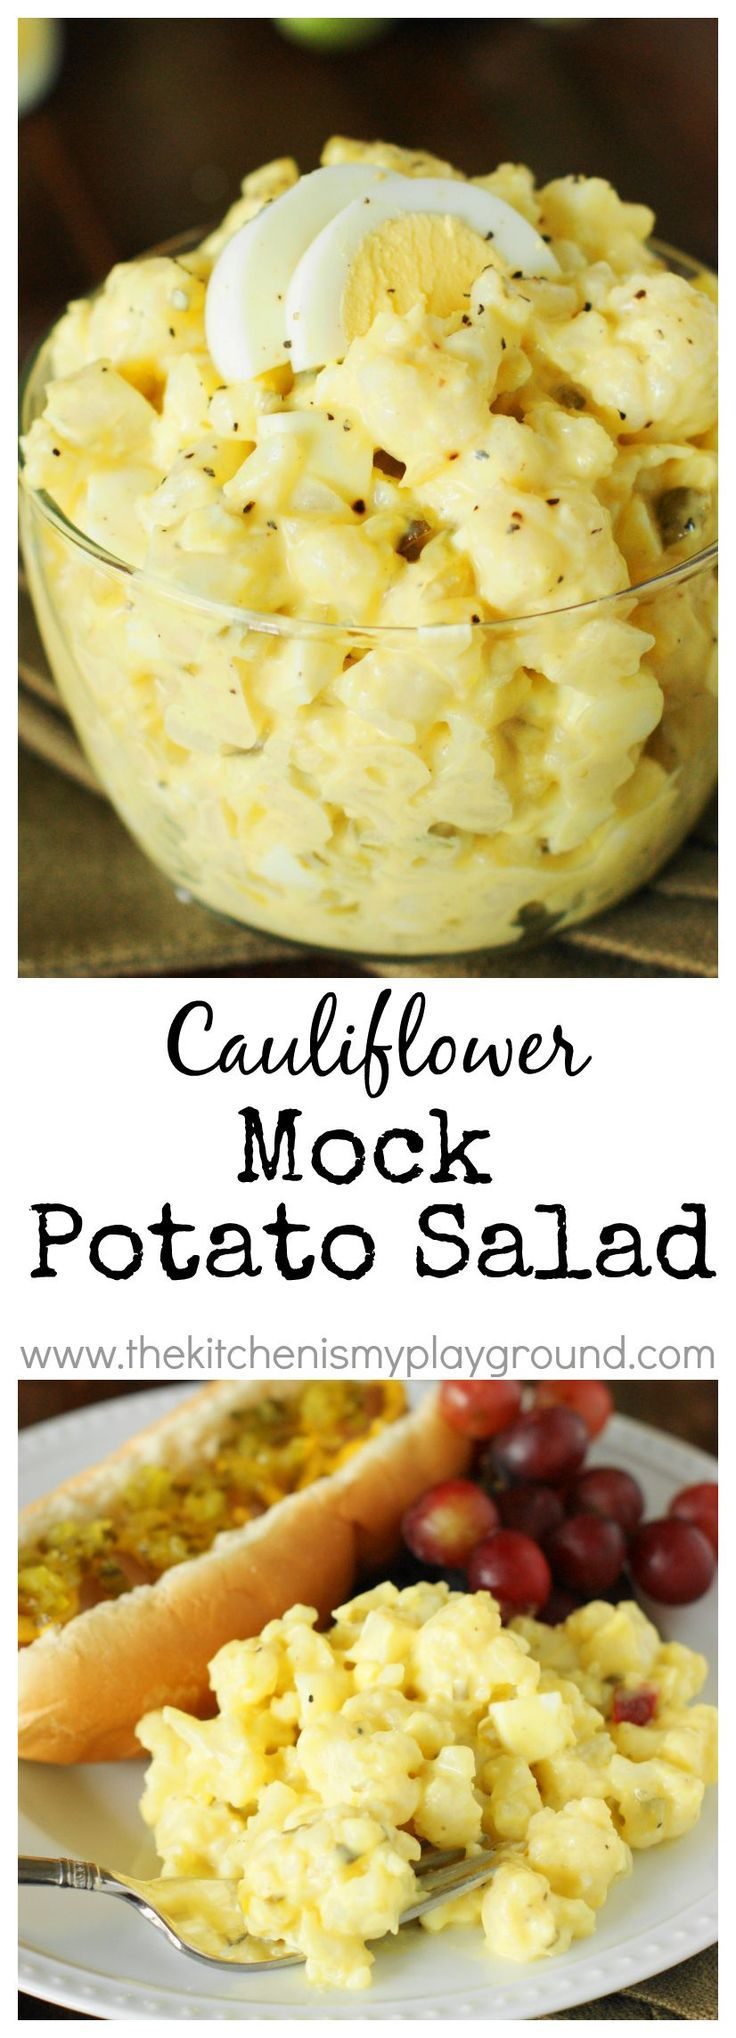 Cauliflower Mock Potato Salad ~ a full-of-flavor lower-carb version of our beloved potato salad!   www.thekitchenismyplayground.com